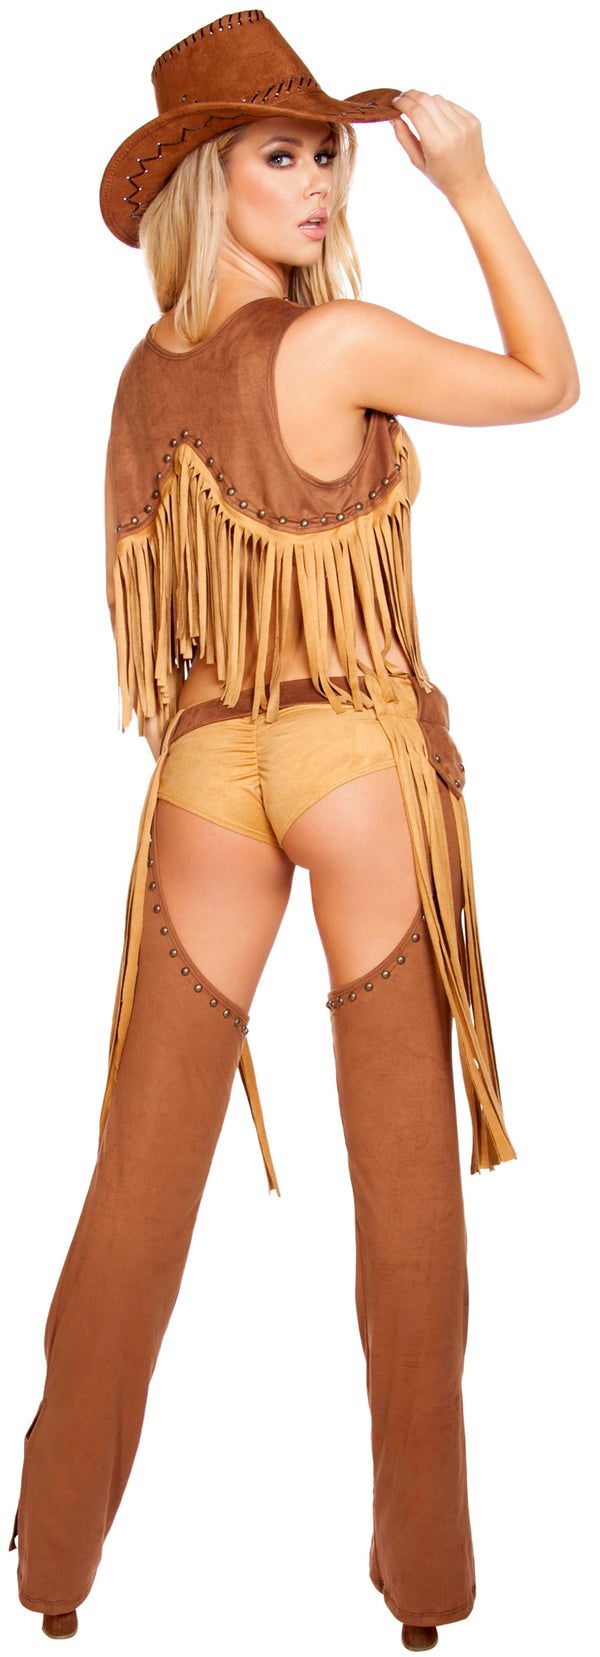 Wild Western Temptress Cowgirl Costume RM4584 Back